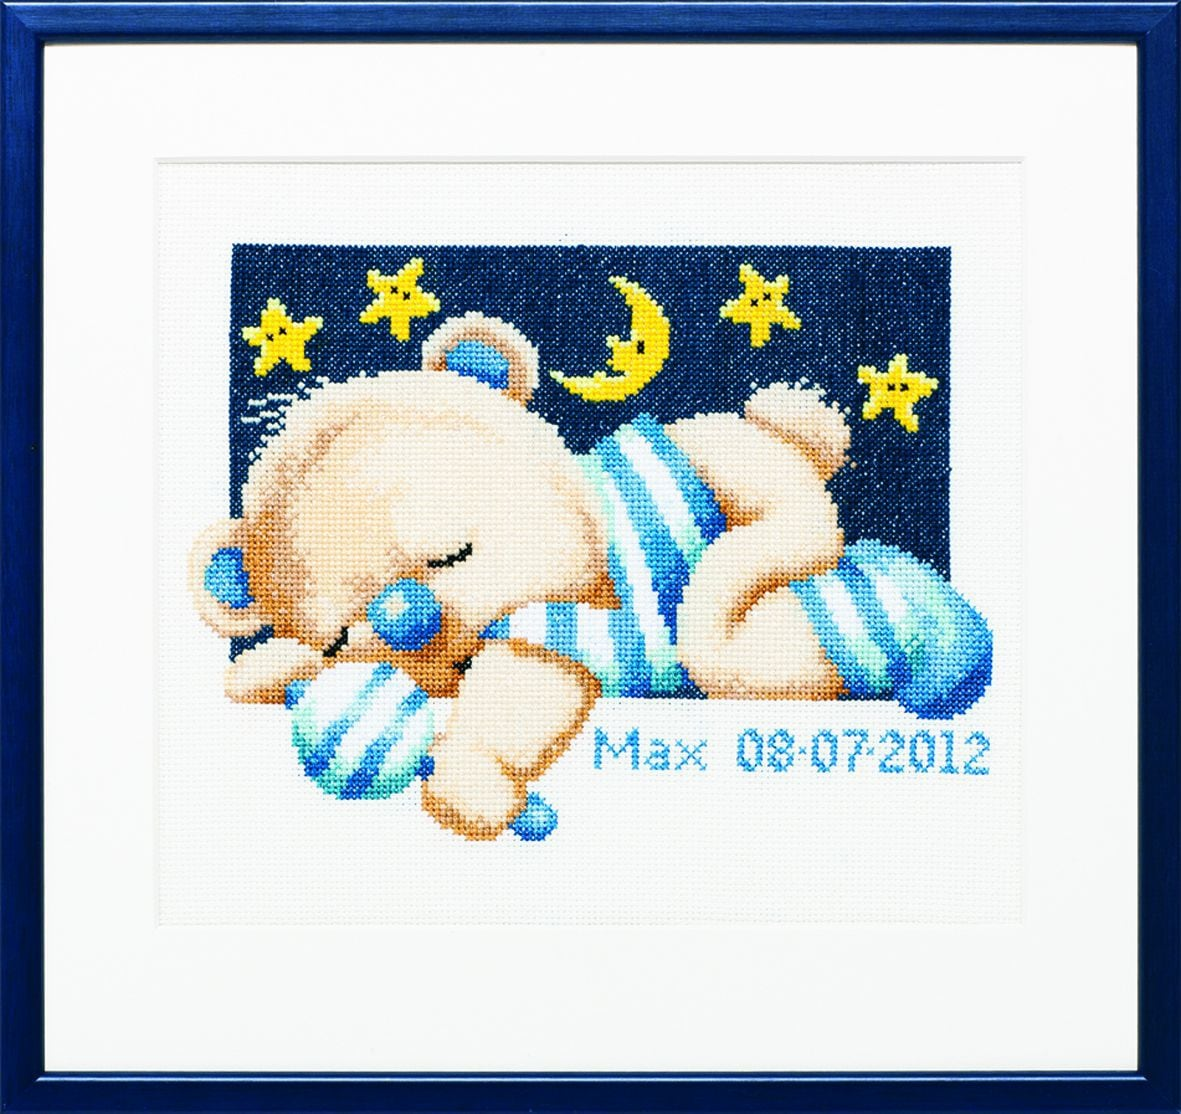 embroidery kit birthday sampler sleaping teddy boy